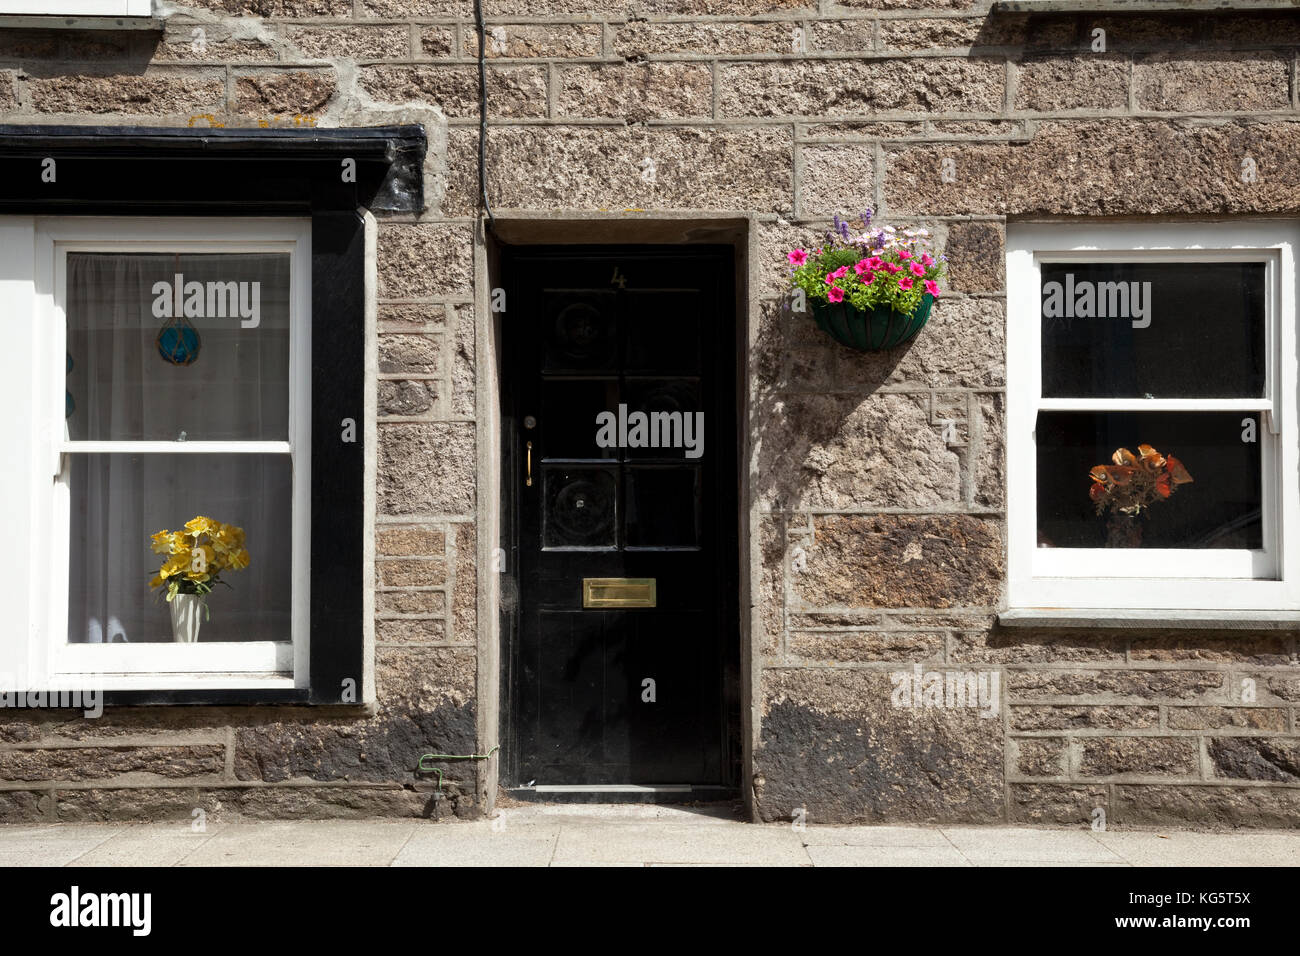 Flowers adorn the windows and wall of a home in Saint Just, Cornwall, England - Stock Image